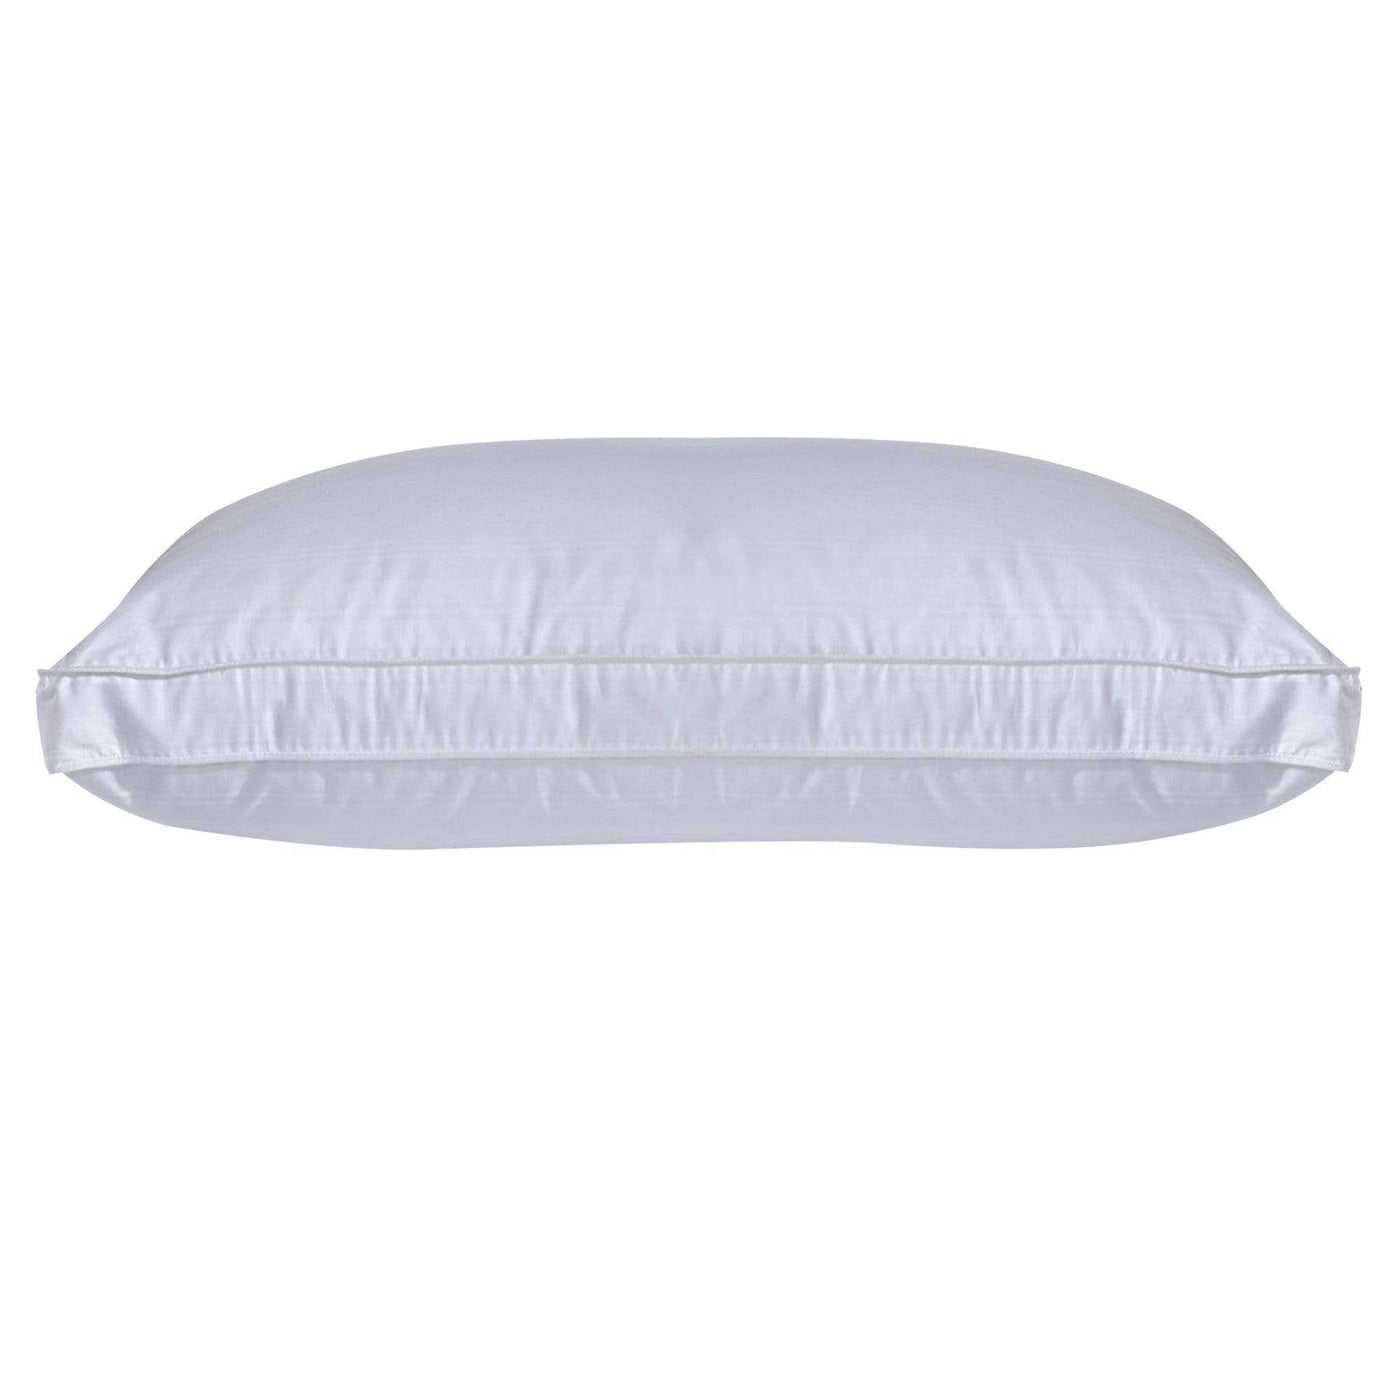 Pack of 1 2 4 or 8 Hotel High Quality Egyptian Stripe Bed Pillows